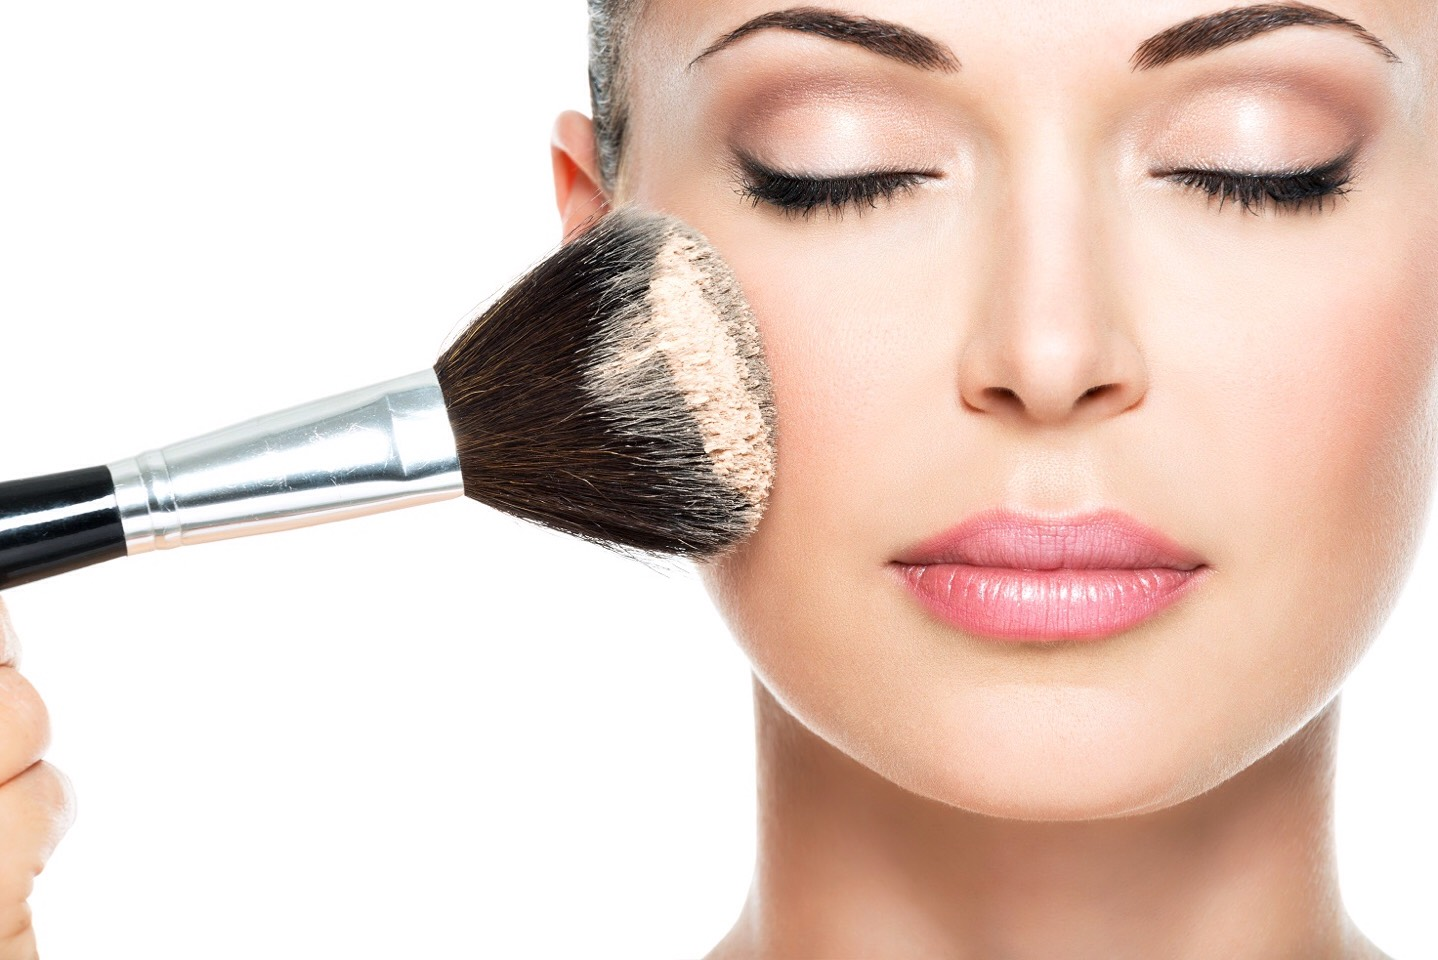 Beauty Tip 3: Do not use to much makeup:Teens look beautiful with or without make up. But when you use make up, you are at a risk of overdoing it that can make you look like an older person. Keep it simple by applying tinted moisturizer, little bit of eye shadow and nude or light pink lip gloss.